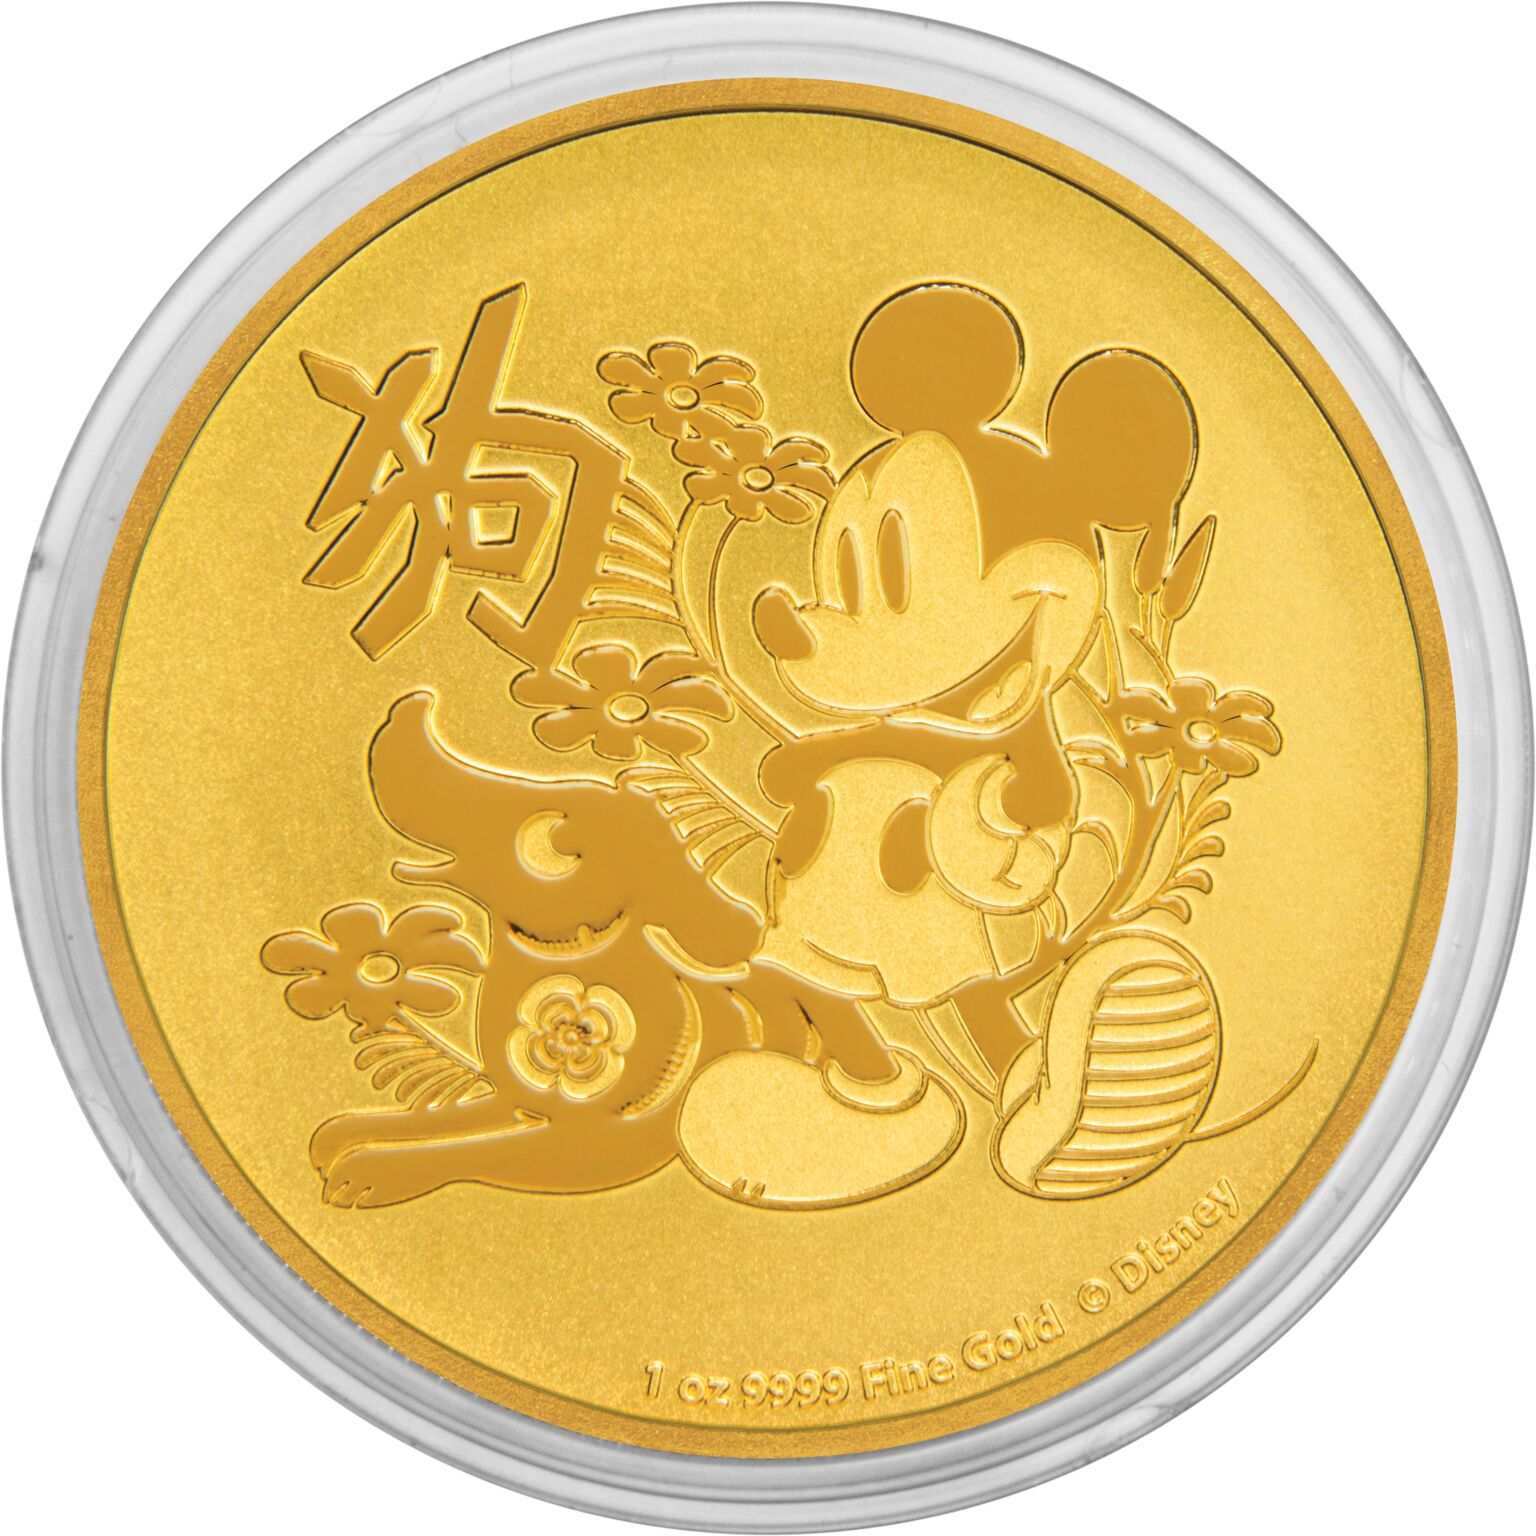 2018 1 Oz Niue Disney Lunar Year Of The Dog 9999 Gold